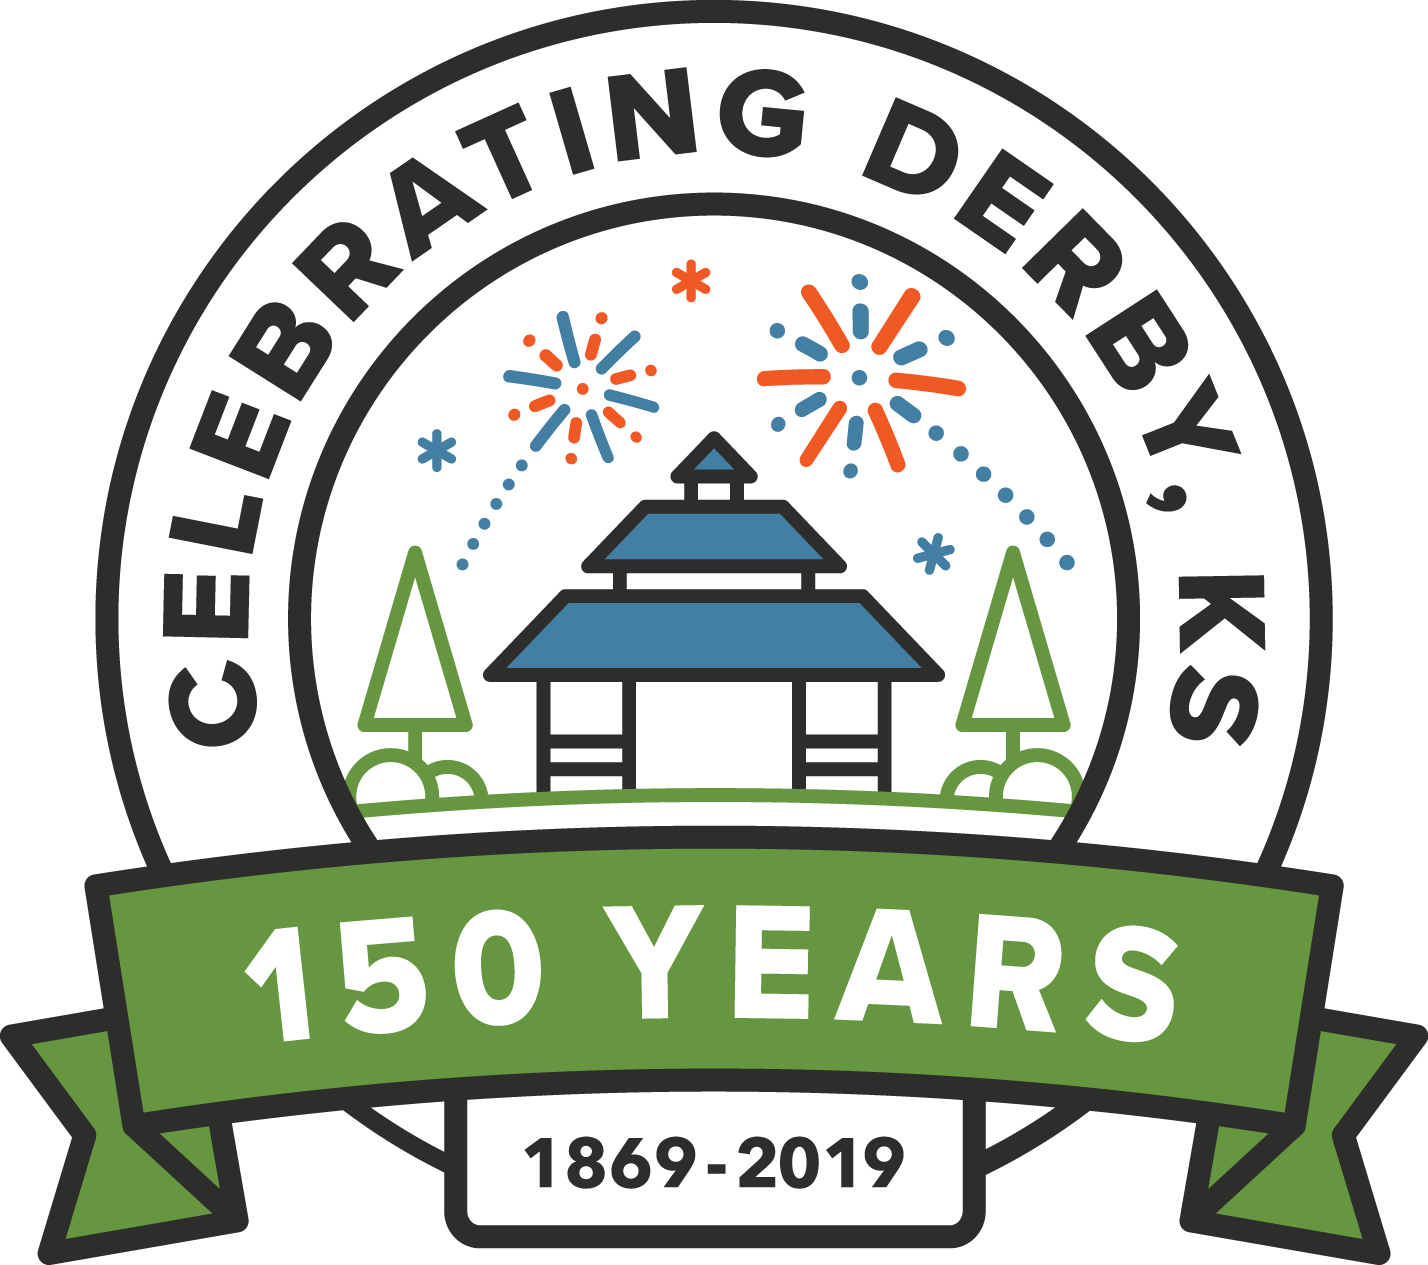 Derby 150th Commemorative Anniversary Gifts